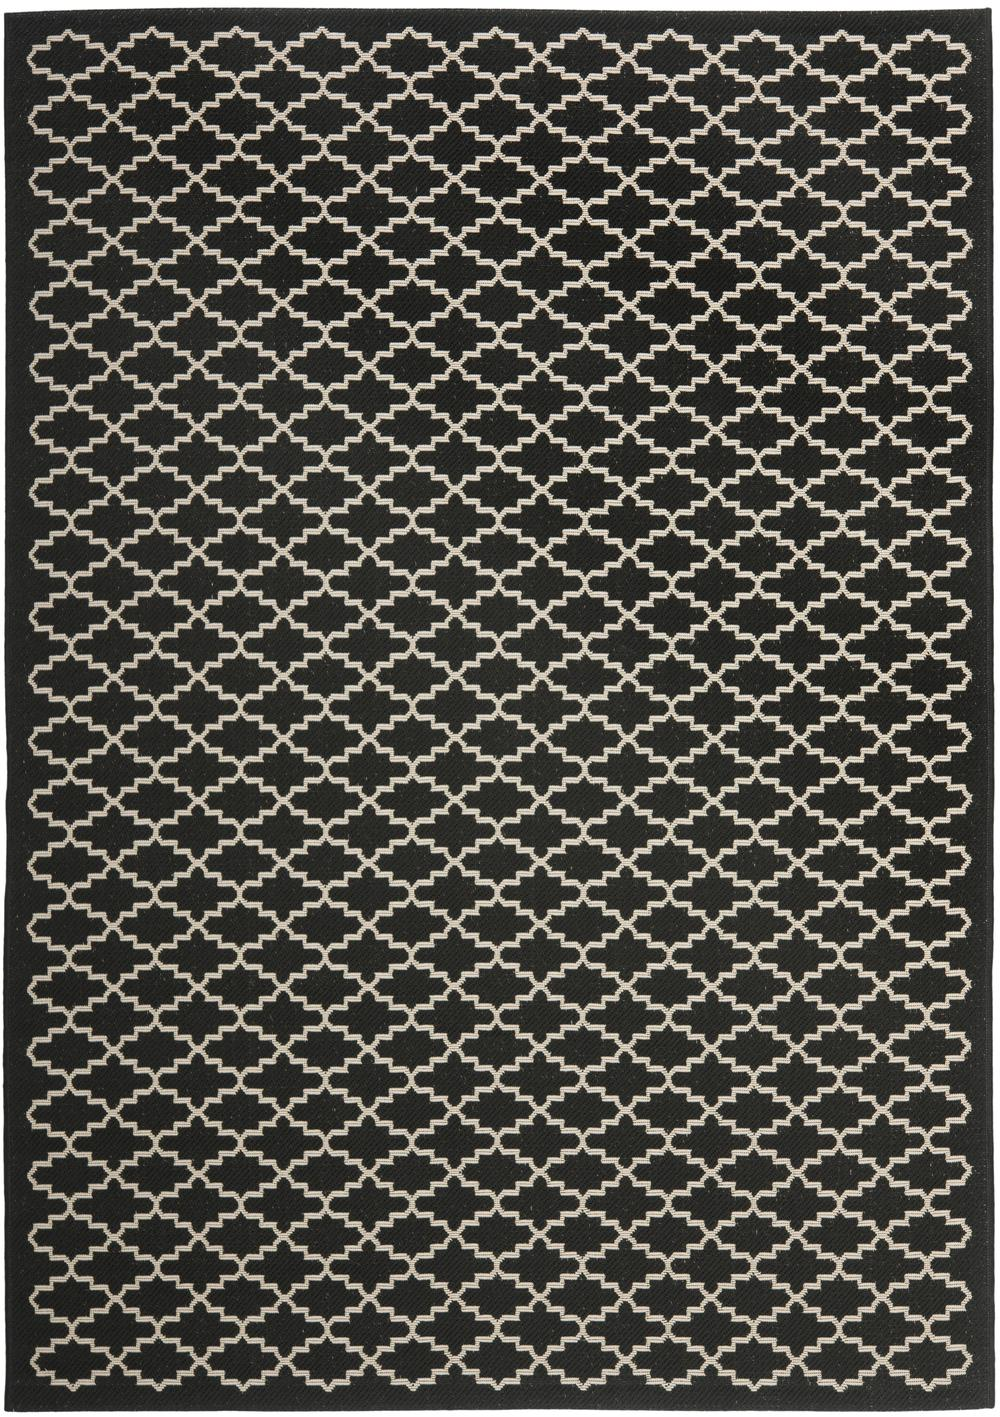 Black And Beige Living Room Decor: Safavieh Courtyard CY6919-226 Black And Beige Area Rug